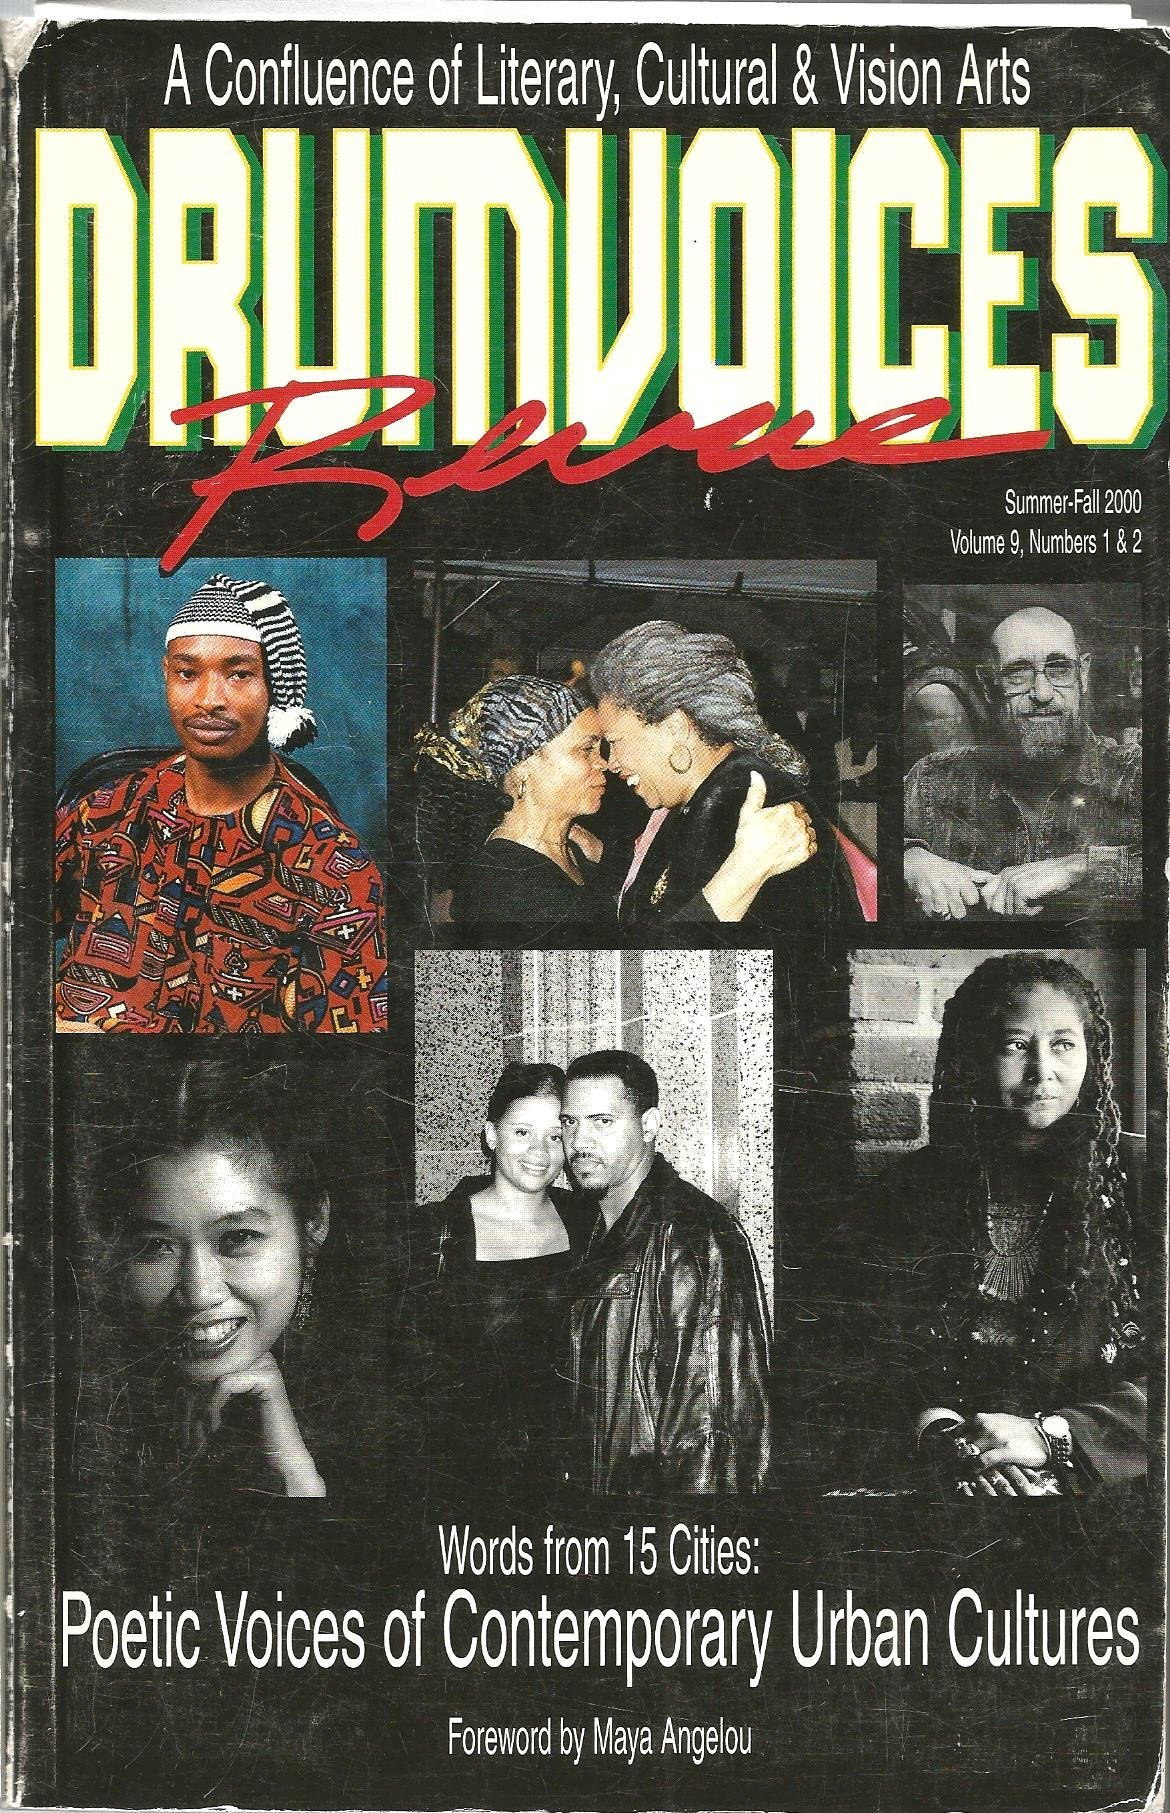 Download Drumvoices Revue (A Confluence of Literary, Culture & Vision Arts), Summer-Fall 2000, Volume 9, Numbers 1 & 2 pdf